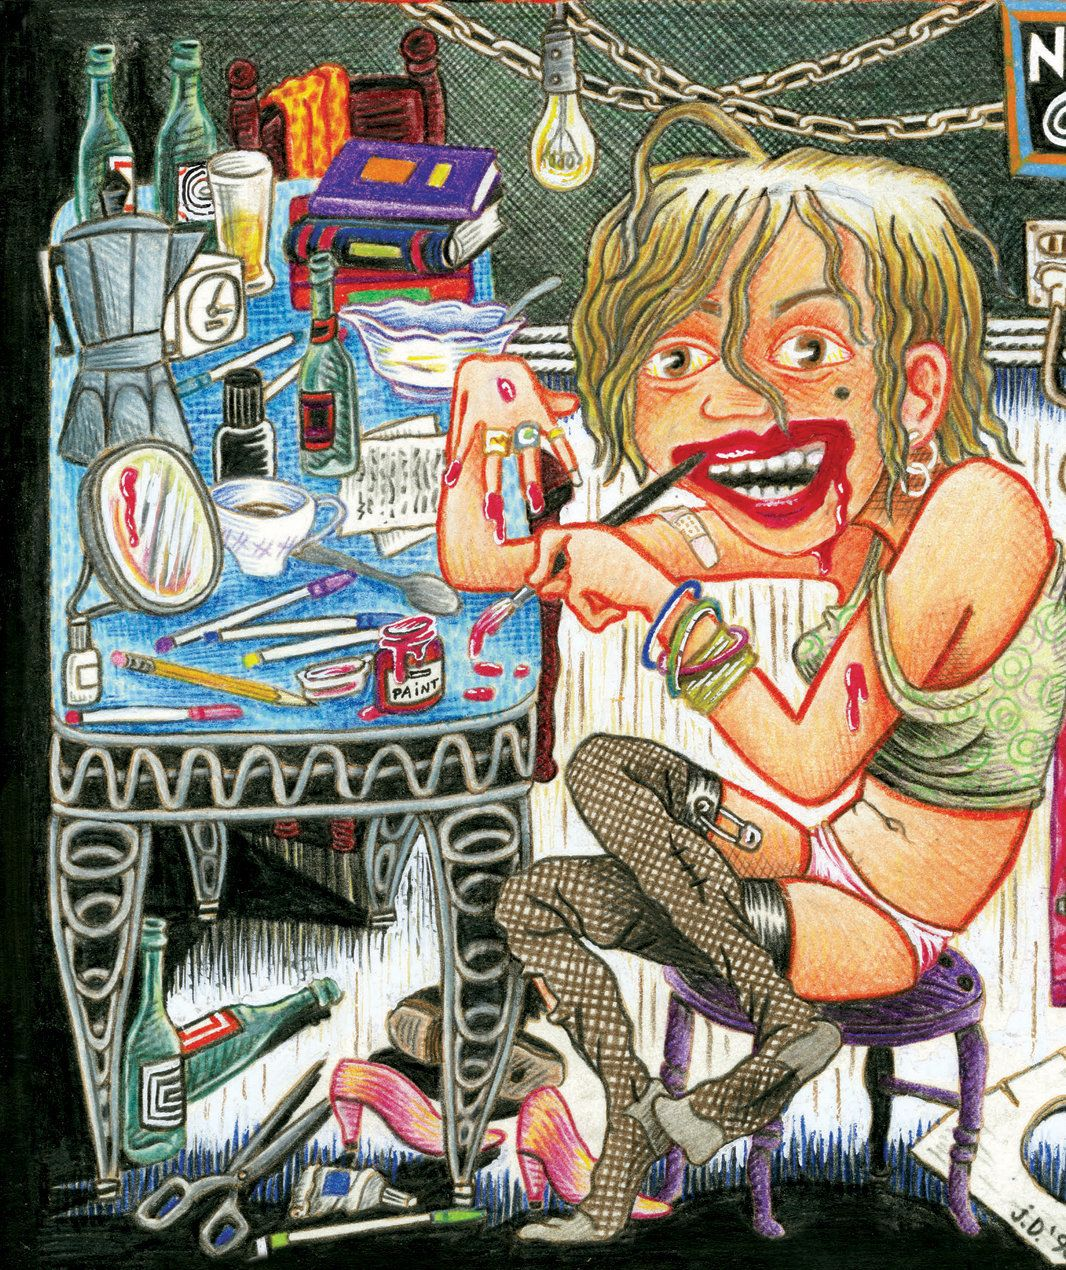 Once Too F**ked Up For Feminists, Comic Legend Julie Doucet Has Found Her